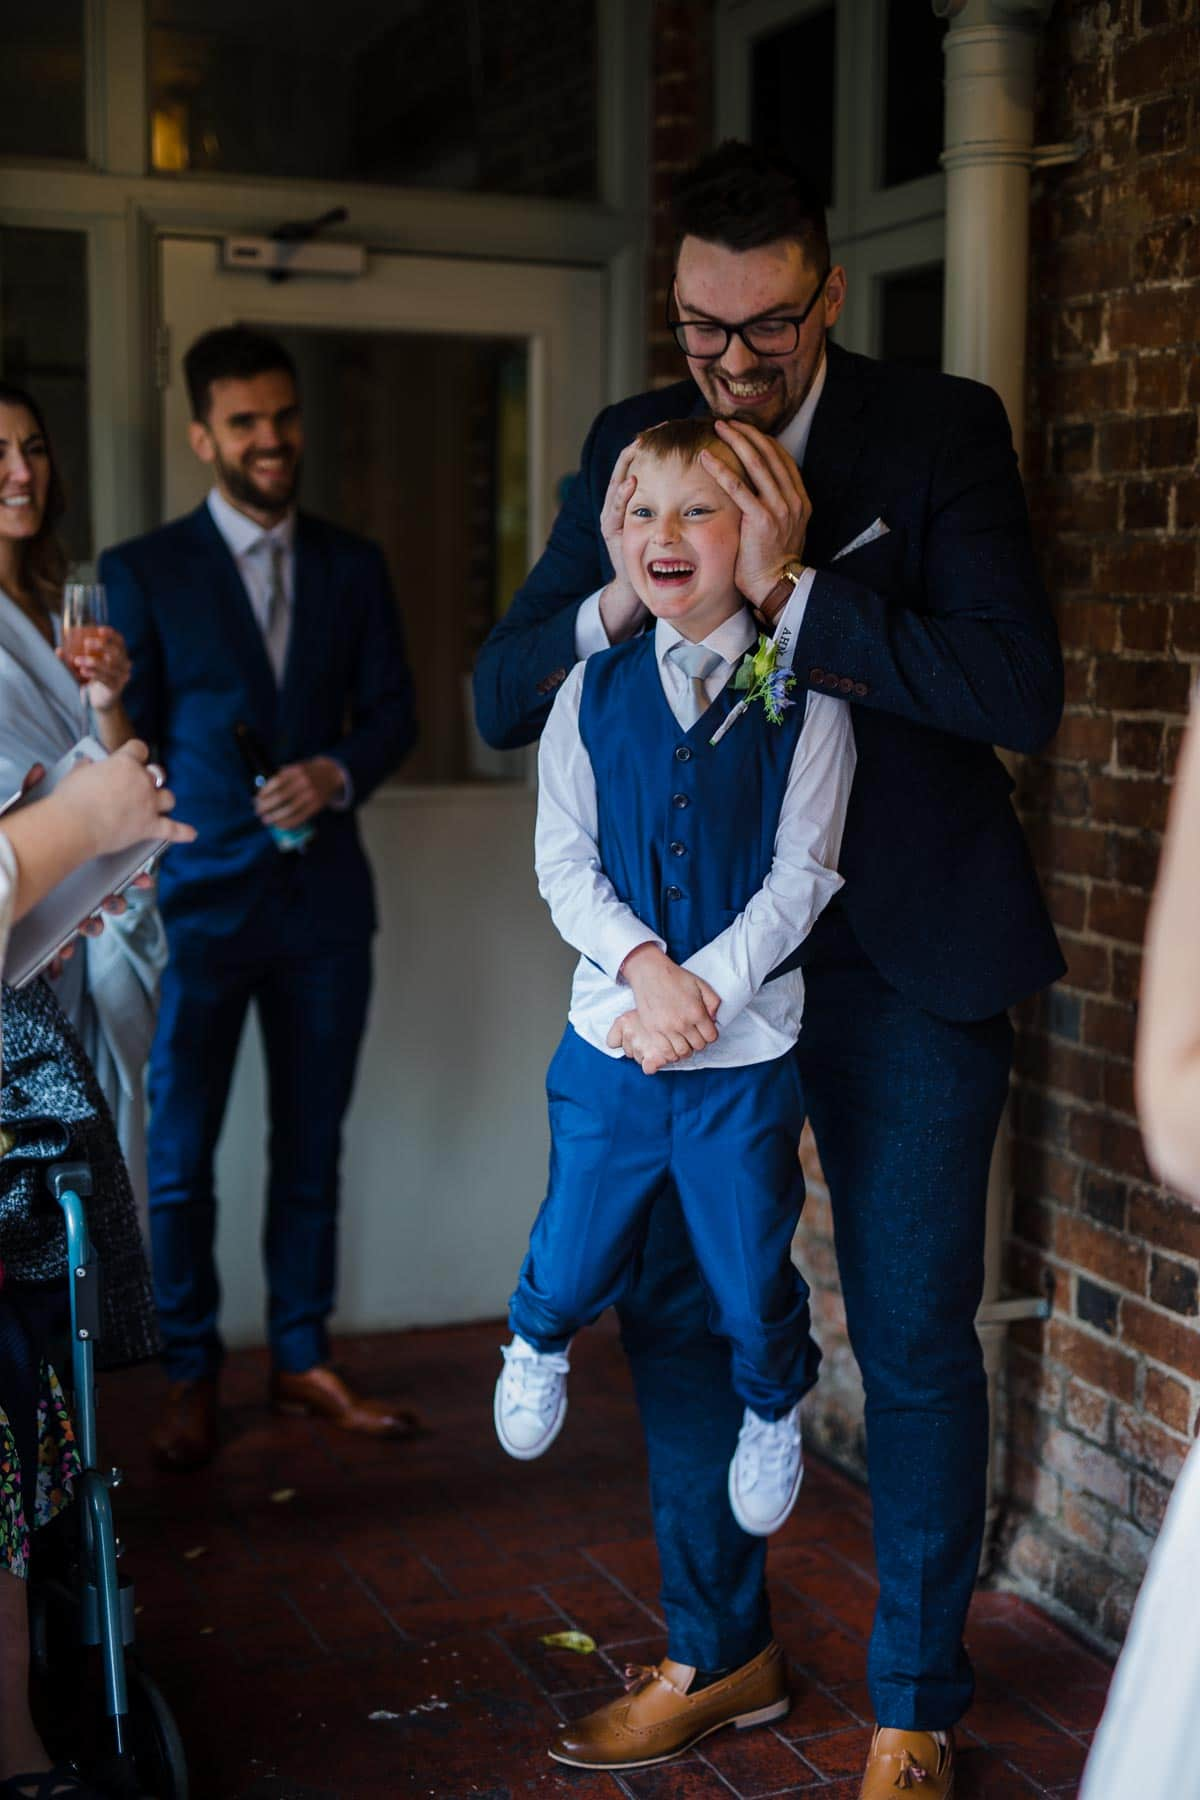 Page boy being picked up by his head in a funny moment before the wedding ceremony